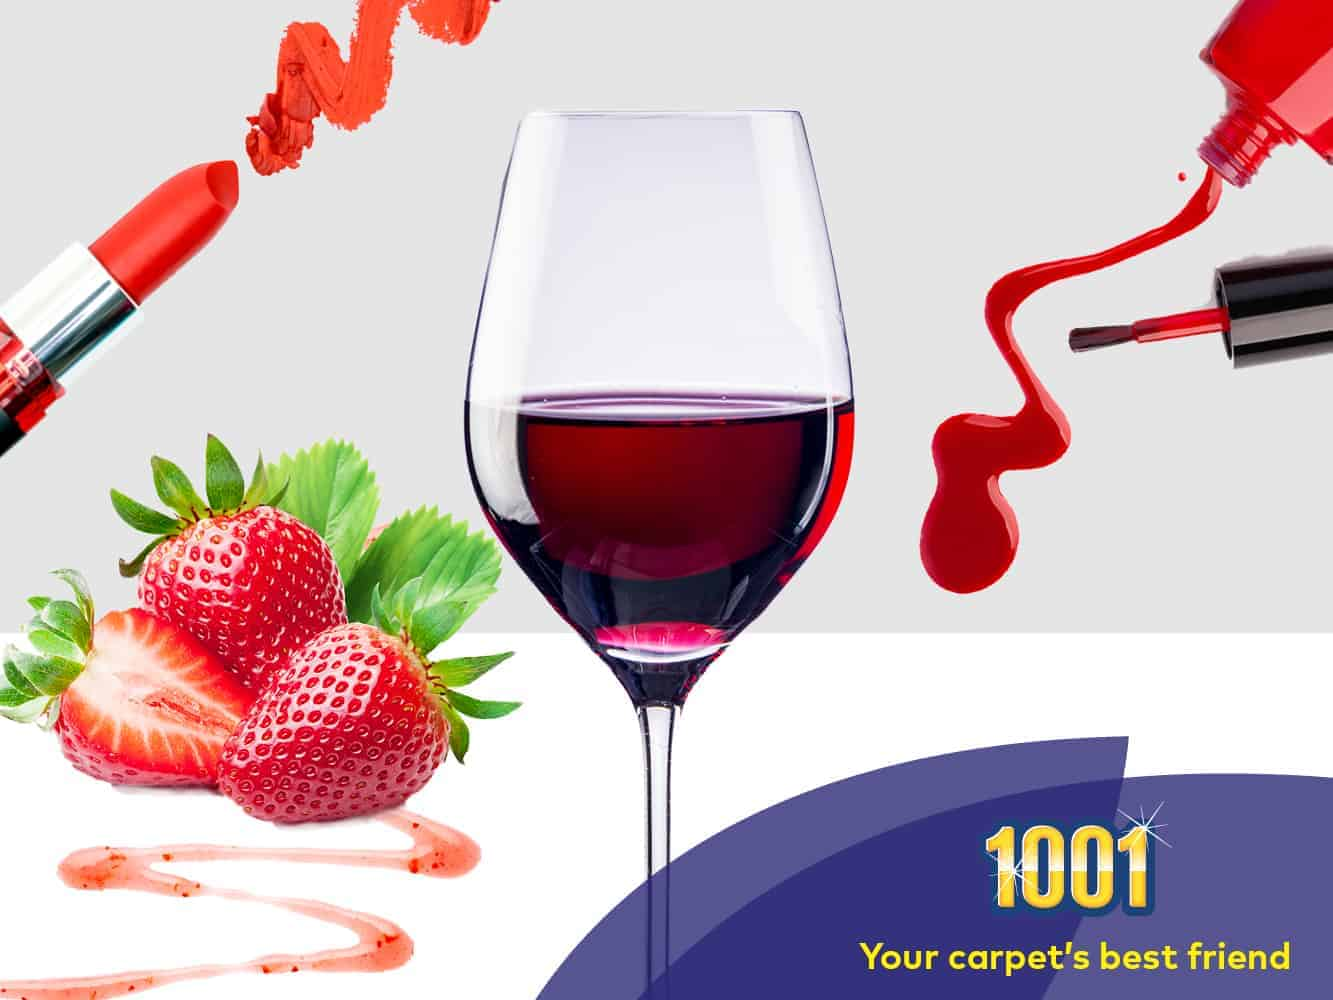 How to deal with red wine on carpet